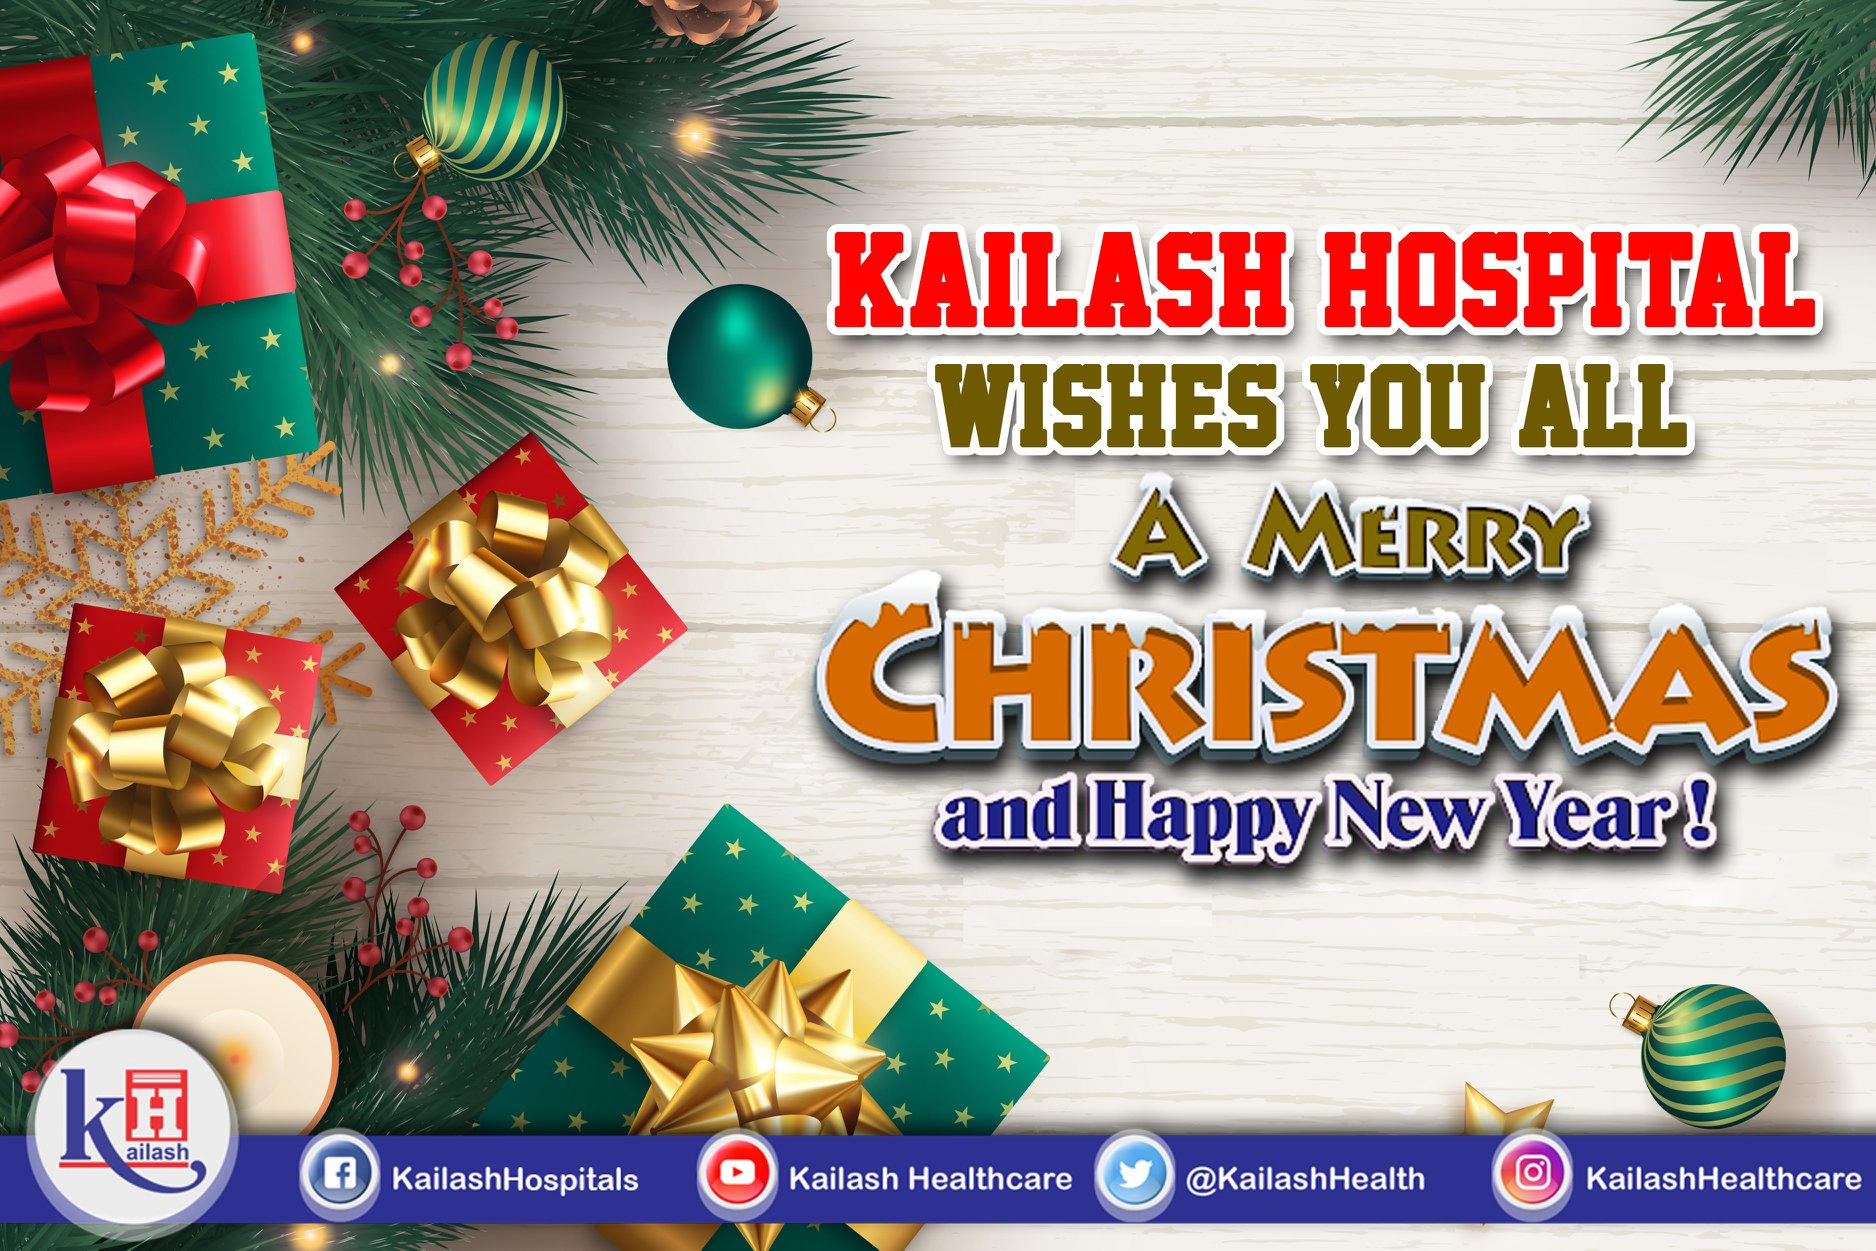 Let your Health shine bright & Life be full of delight. Kailash Hospital wishes you all a Merry Christmas & Happy New Year!